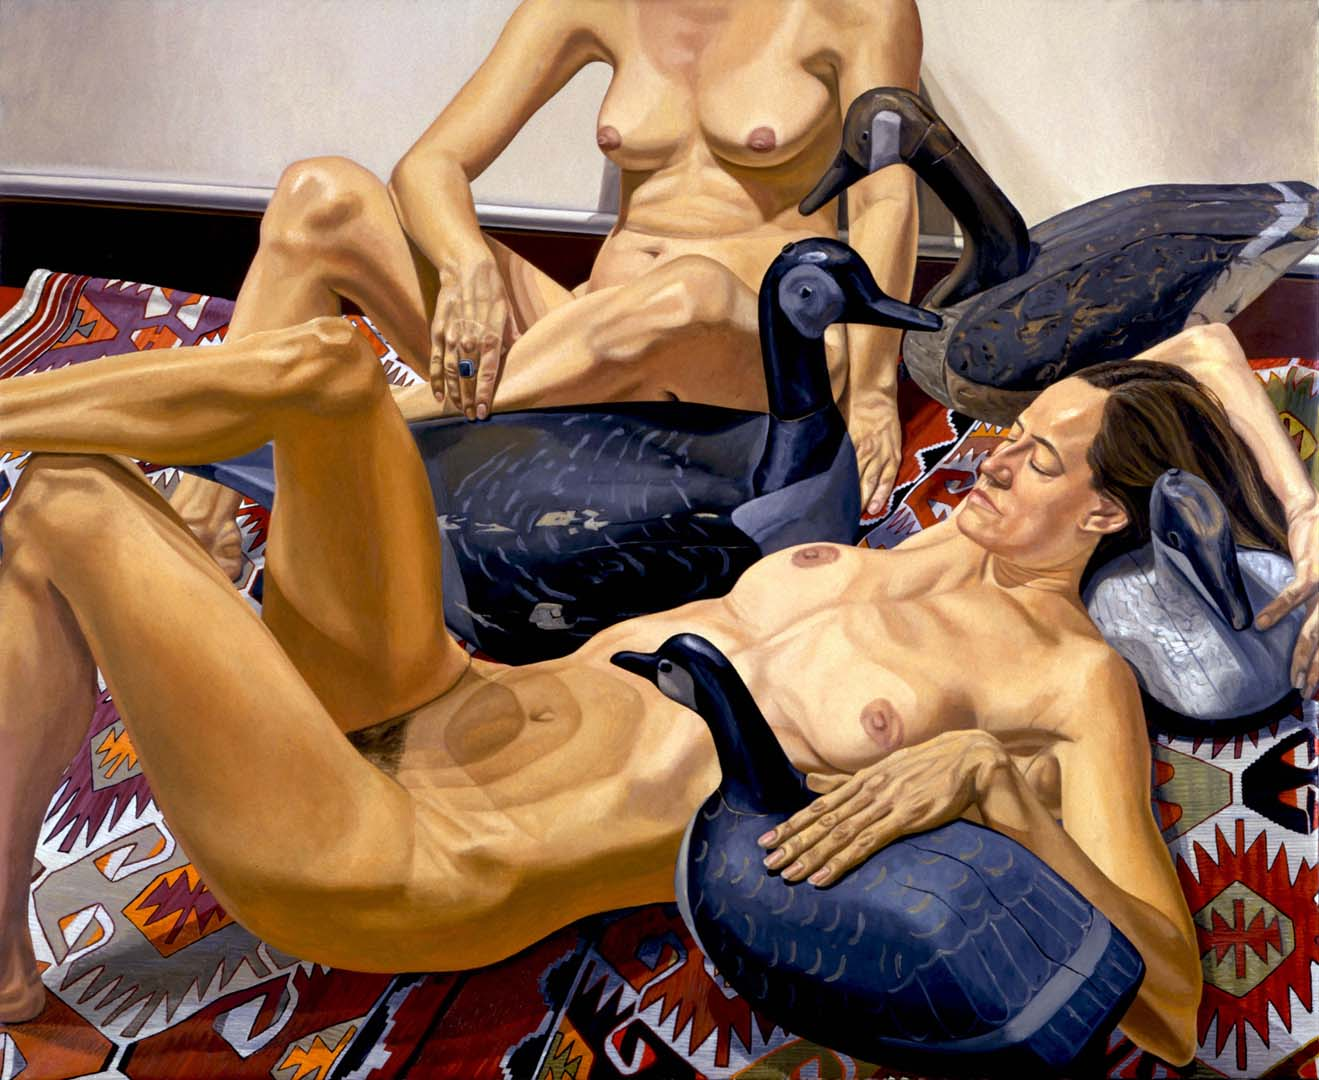 1994 Two Nudes and Four Goose Decoys Oil on Canvas 60 x 72